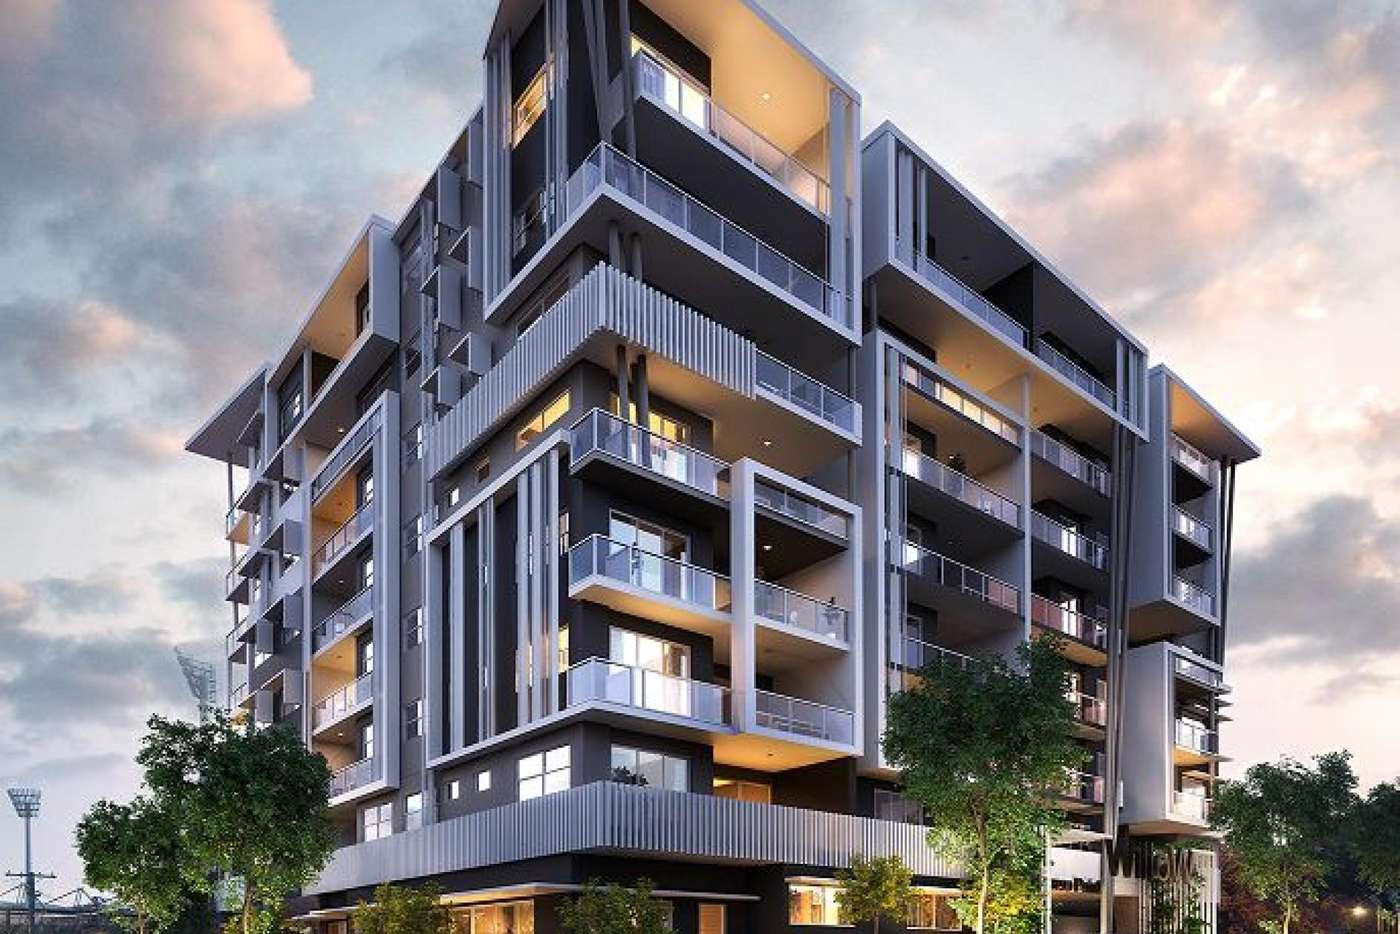 Main view of Homely apartment listing, 26/55 Princess St, Kangaroo Point QLD 4169